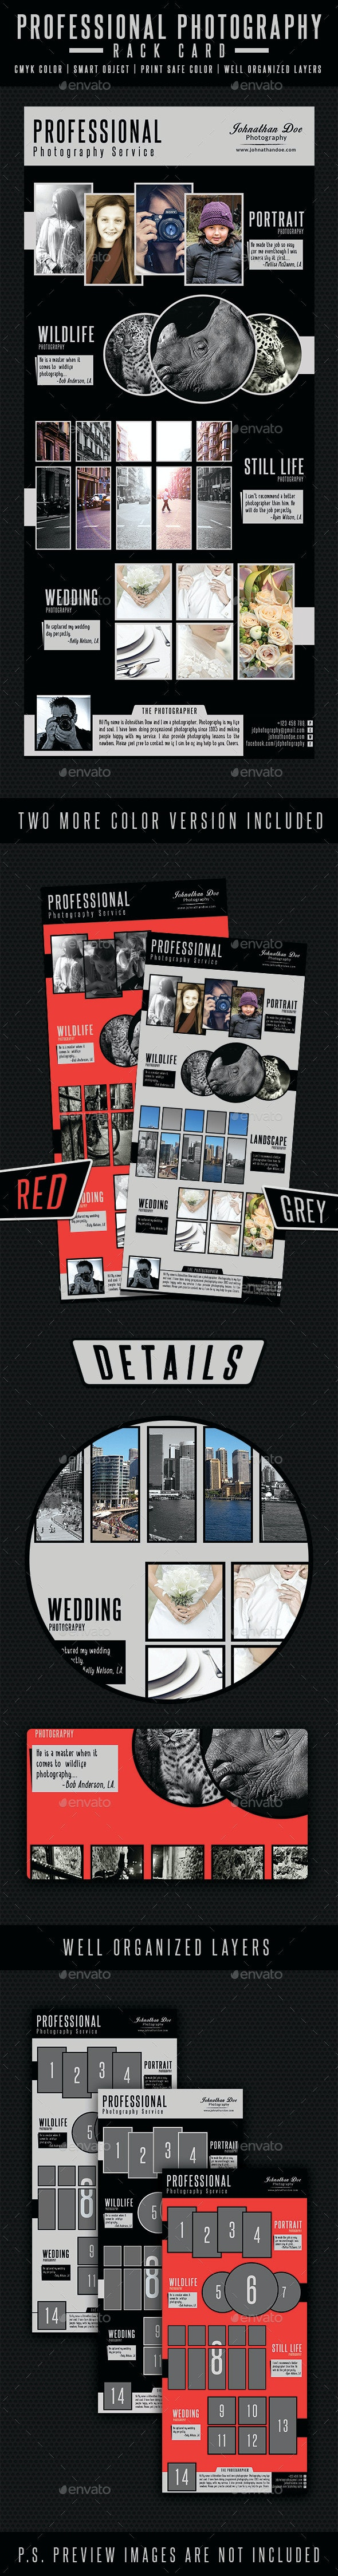 Professional Photography Rack Card - Commerce Flyers